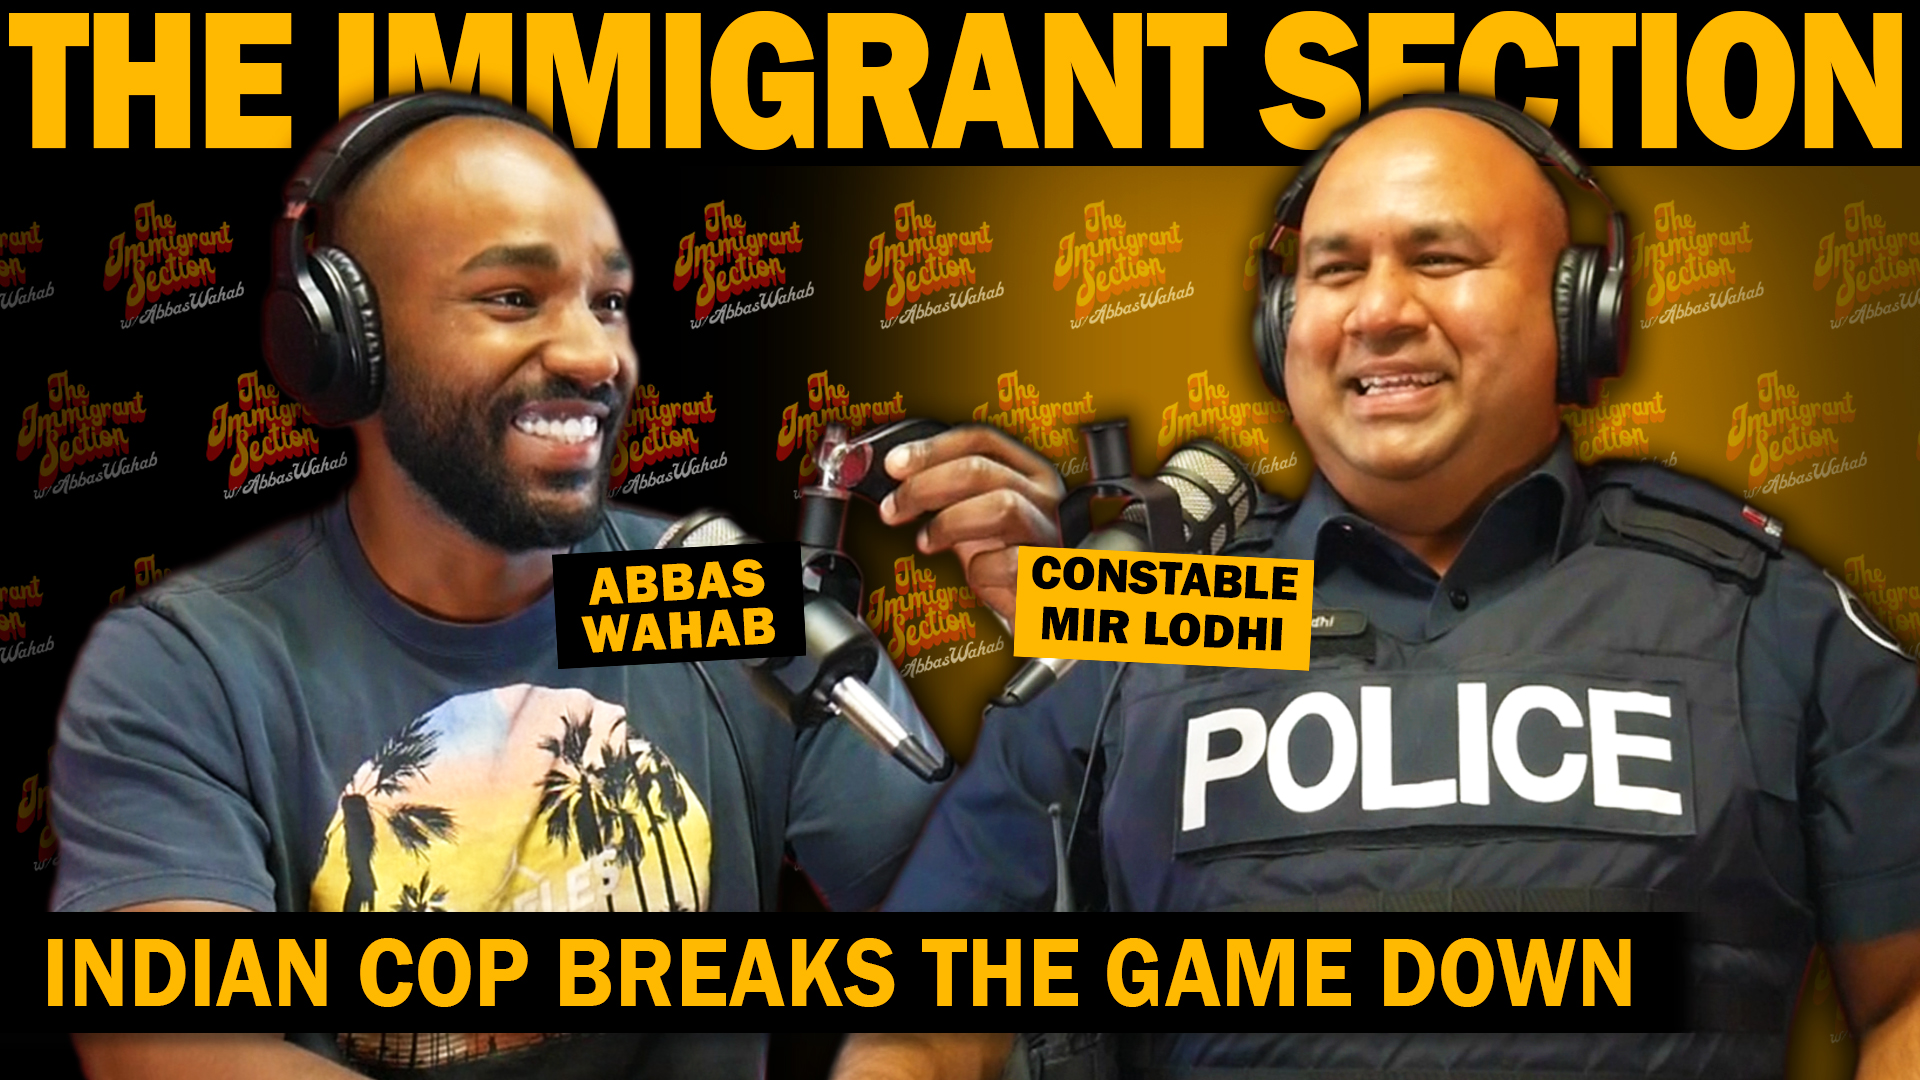 Indian Cop Breaks The Game Down | The Immigrant Section with Abbas Wahab - 121